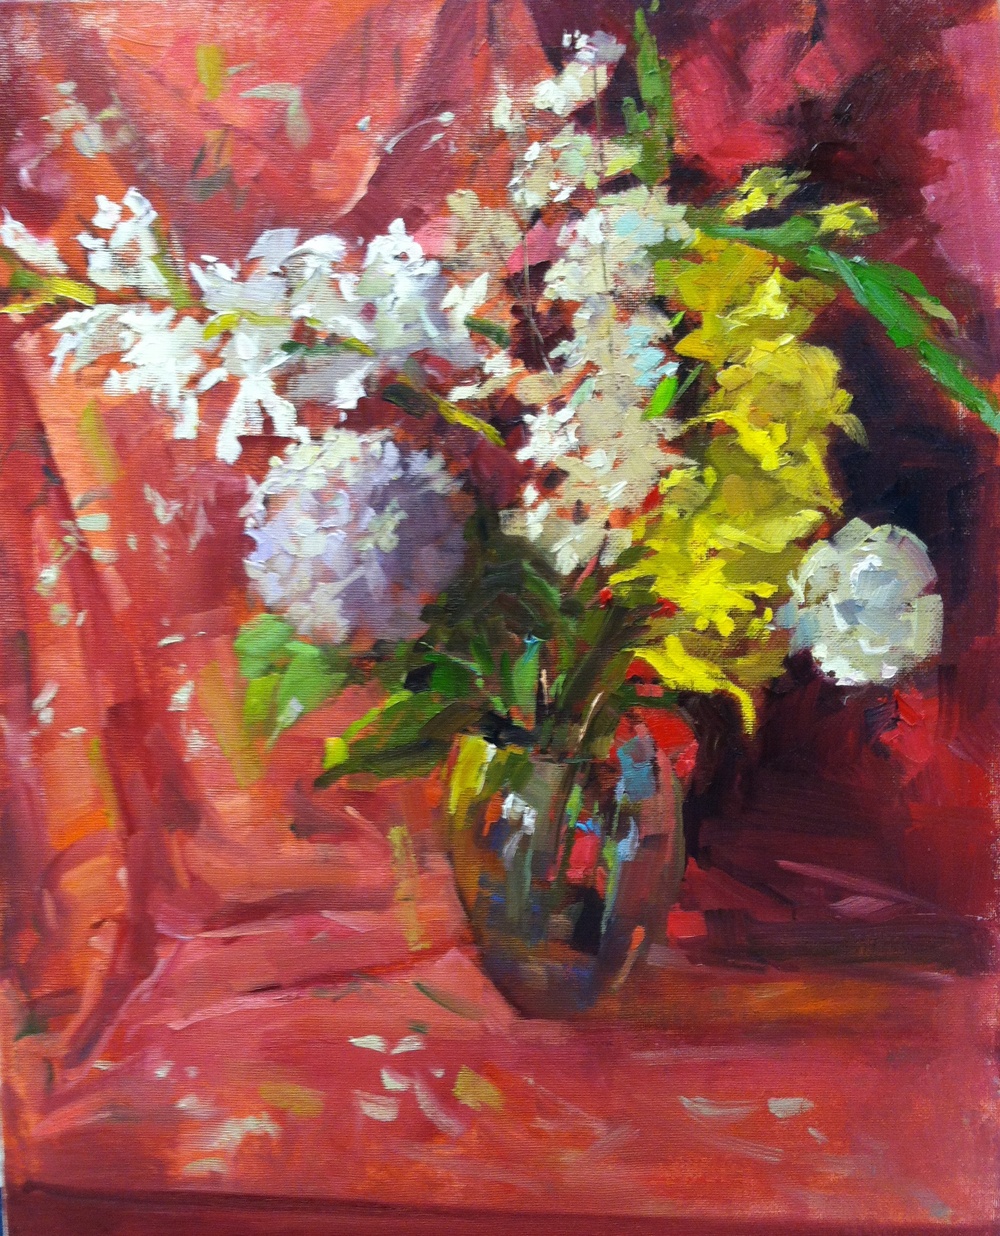 demo flower oil painting 2:16.jpg